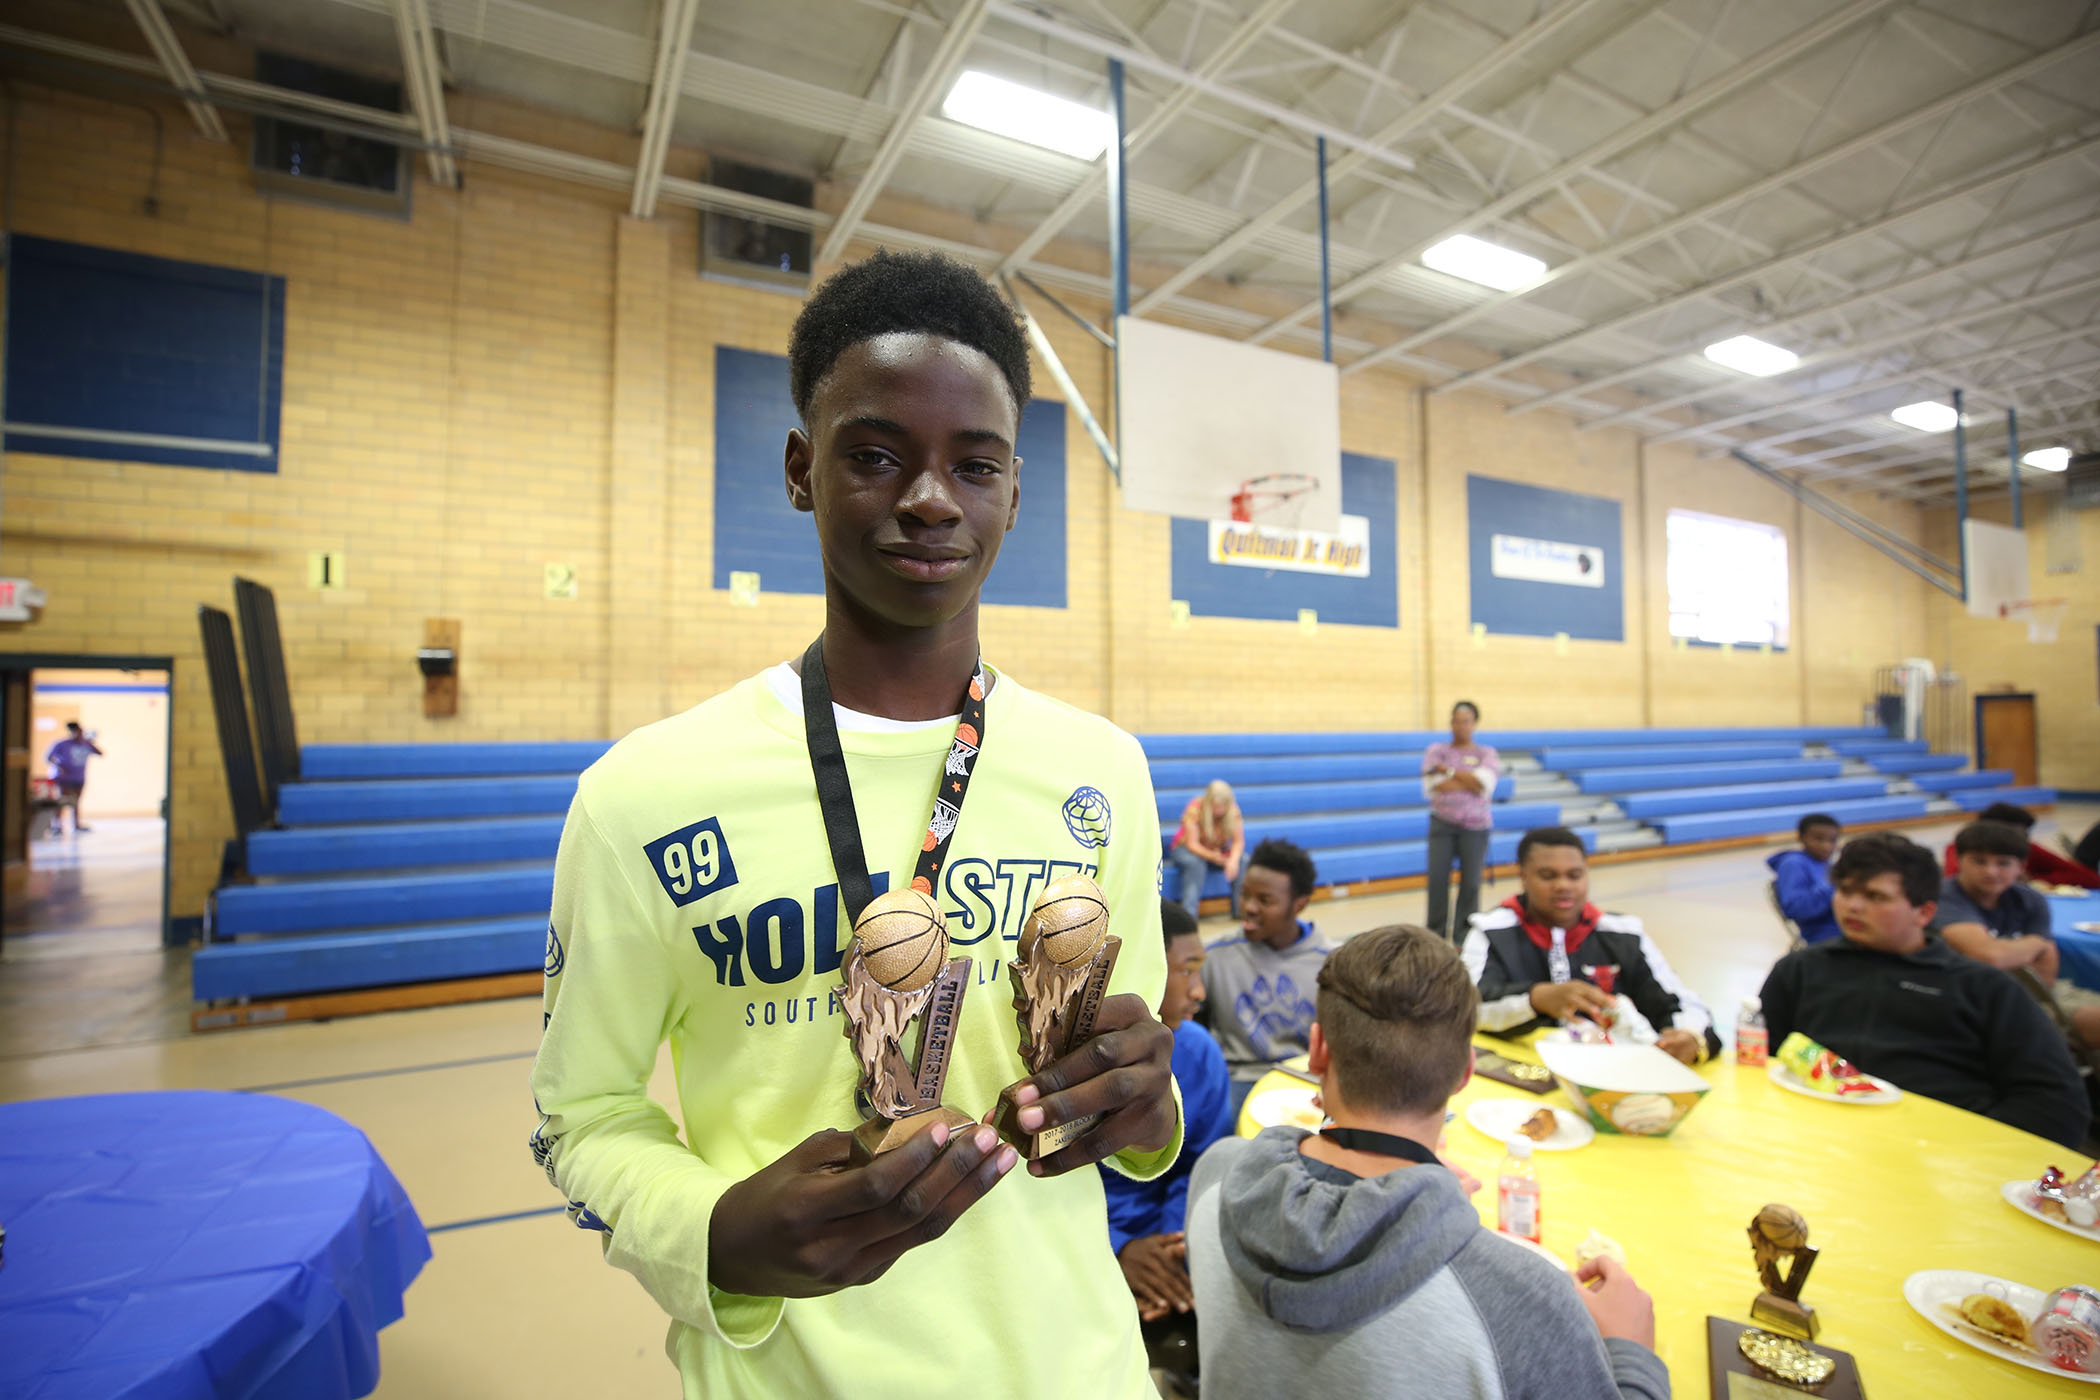 QJH athlete receives award.